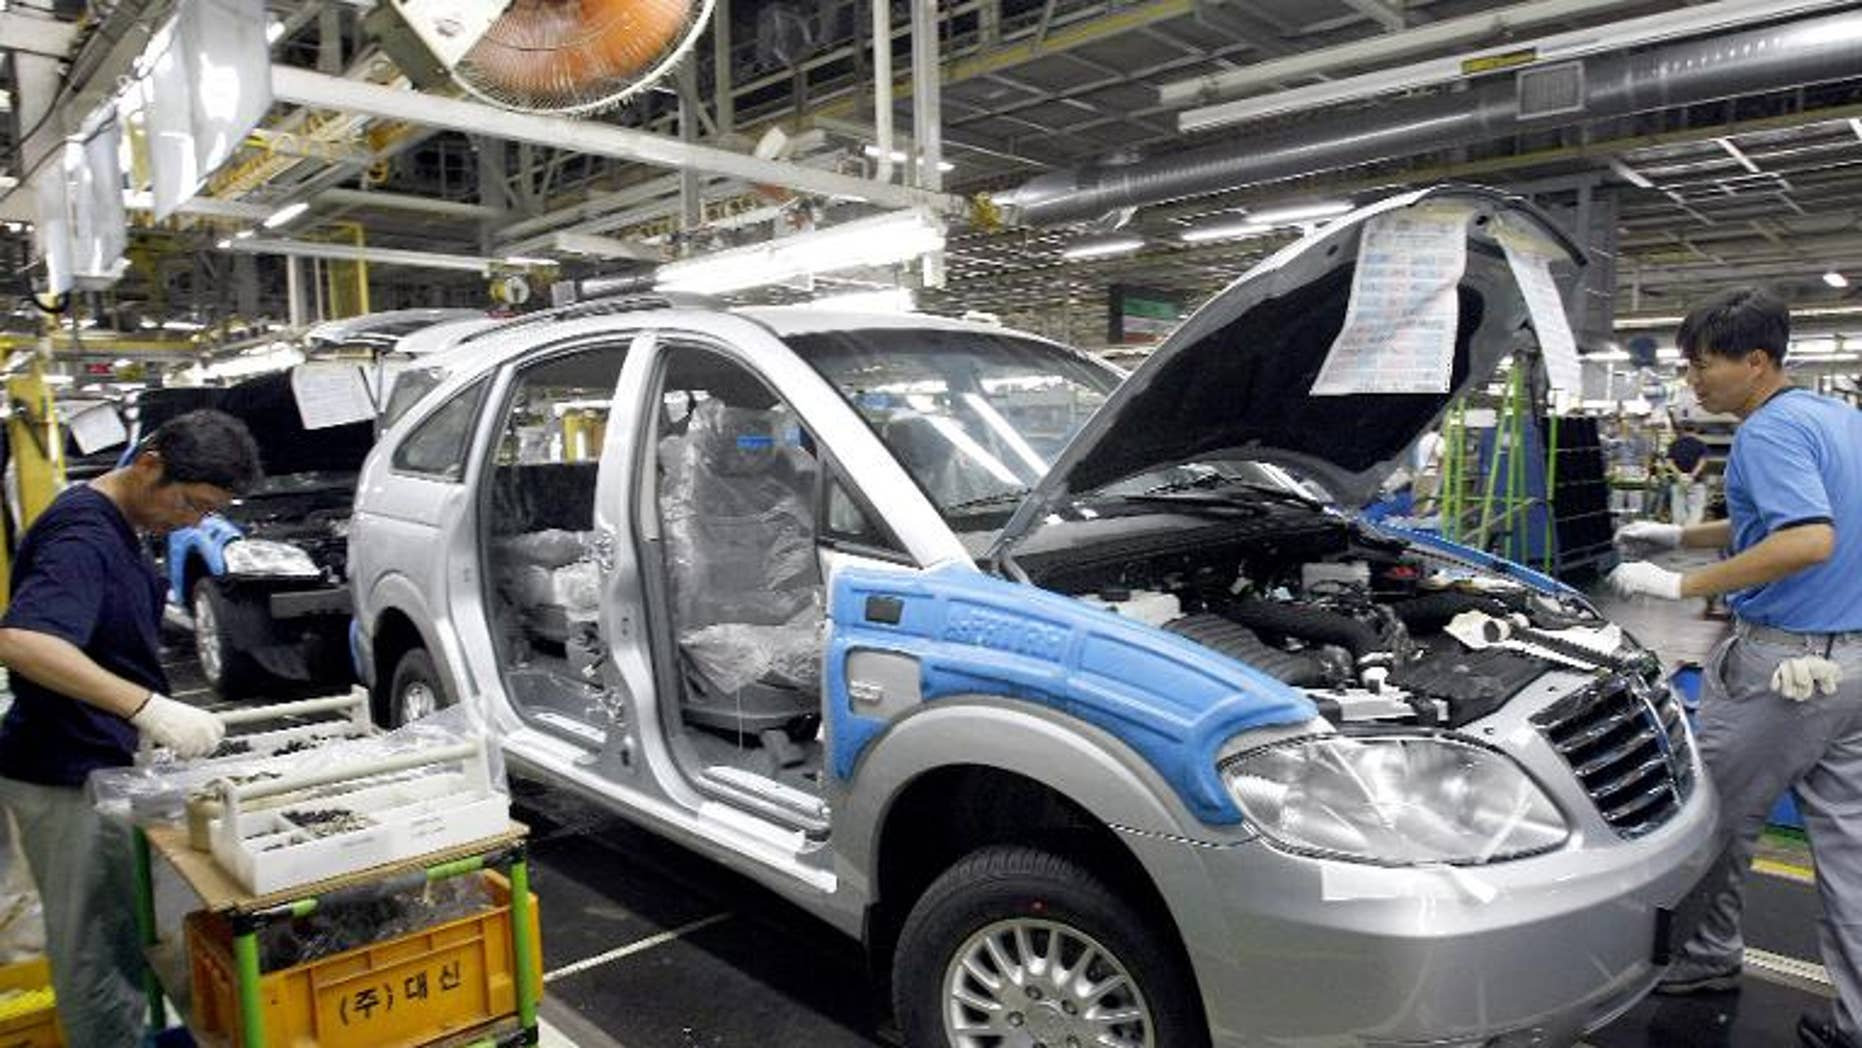 Illustration: Ssangyong Motor workers assemble cars on the production line in Pyeongtaek, South Korea